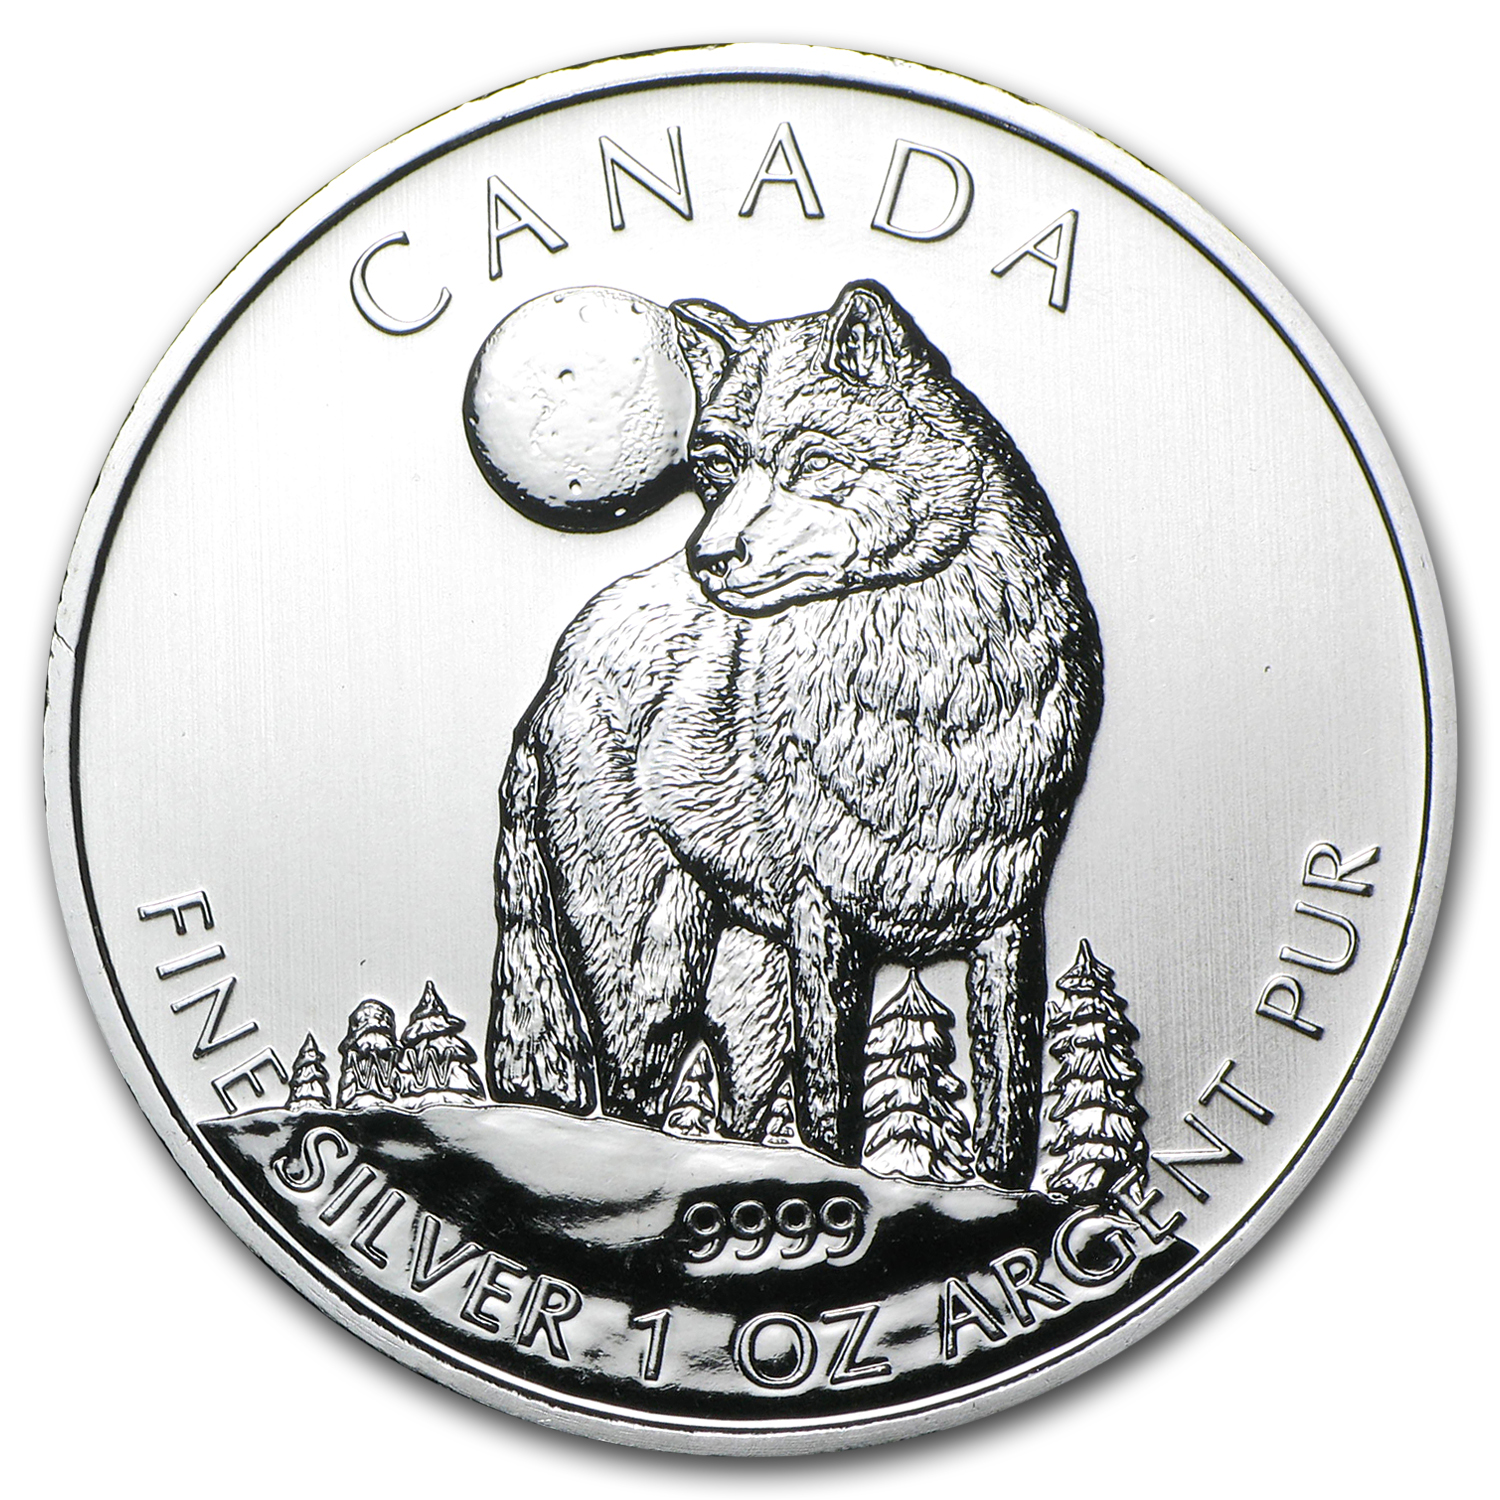 2011-2013 Canada 6-Coin 1 oz Silver Wildlife Series Set BU